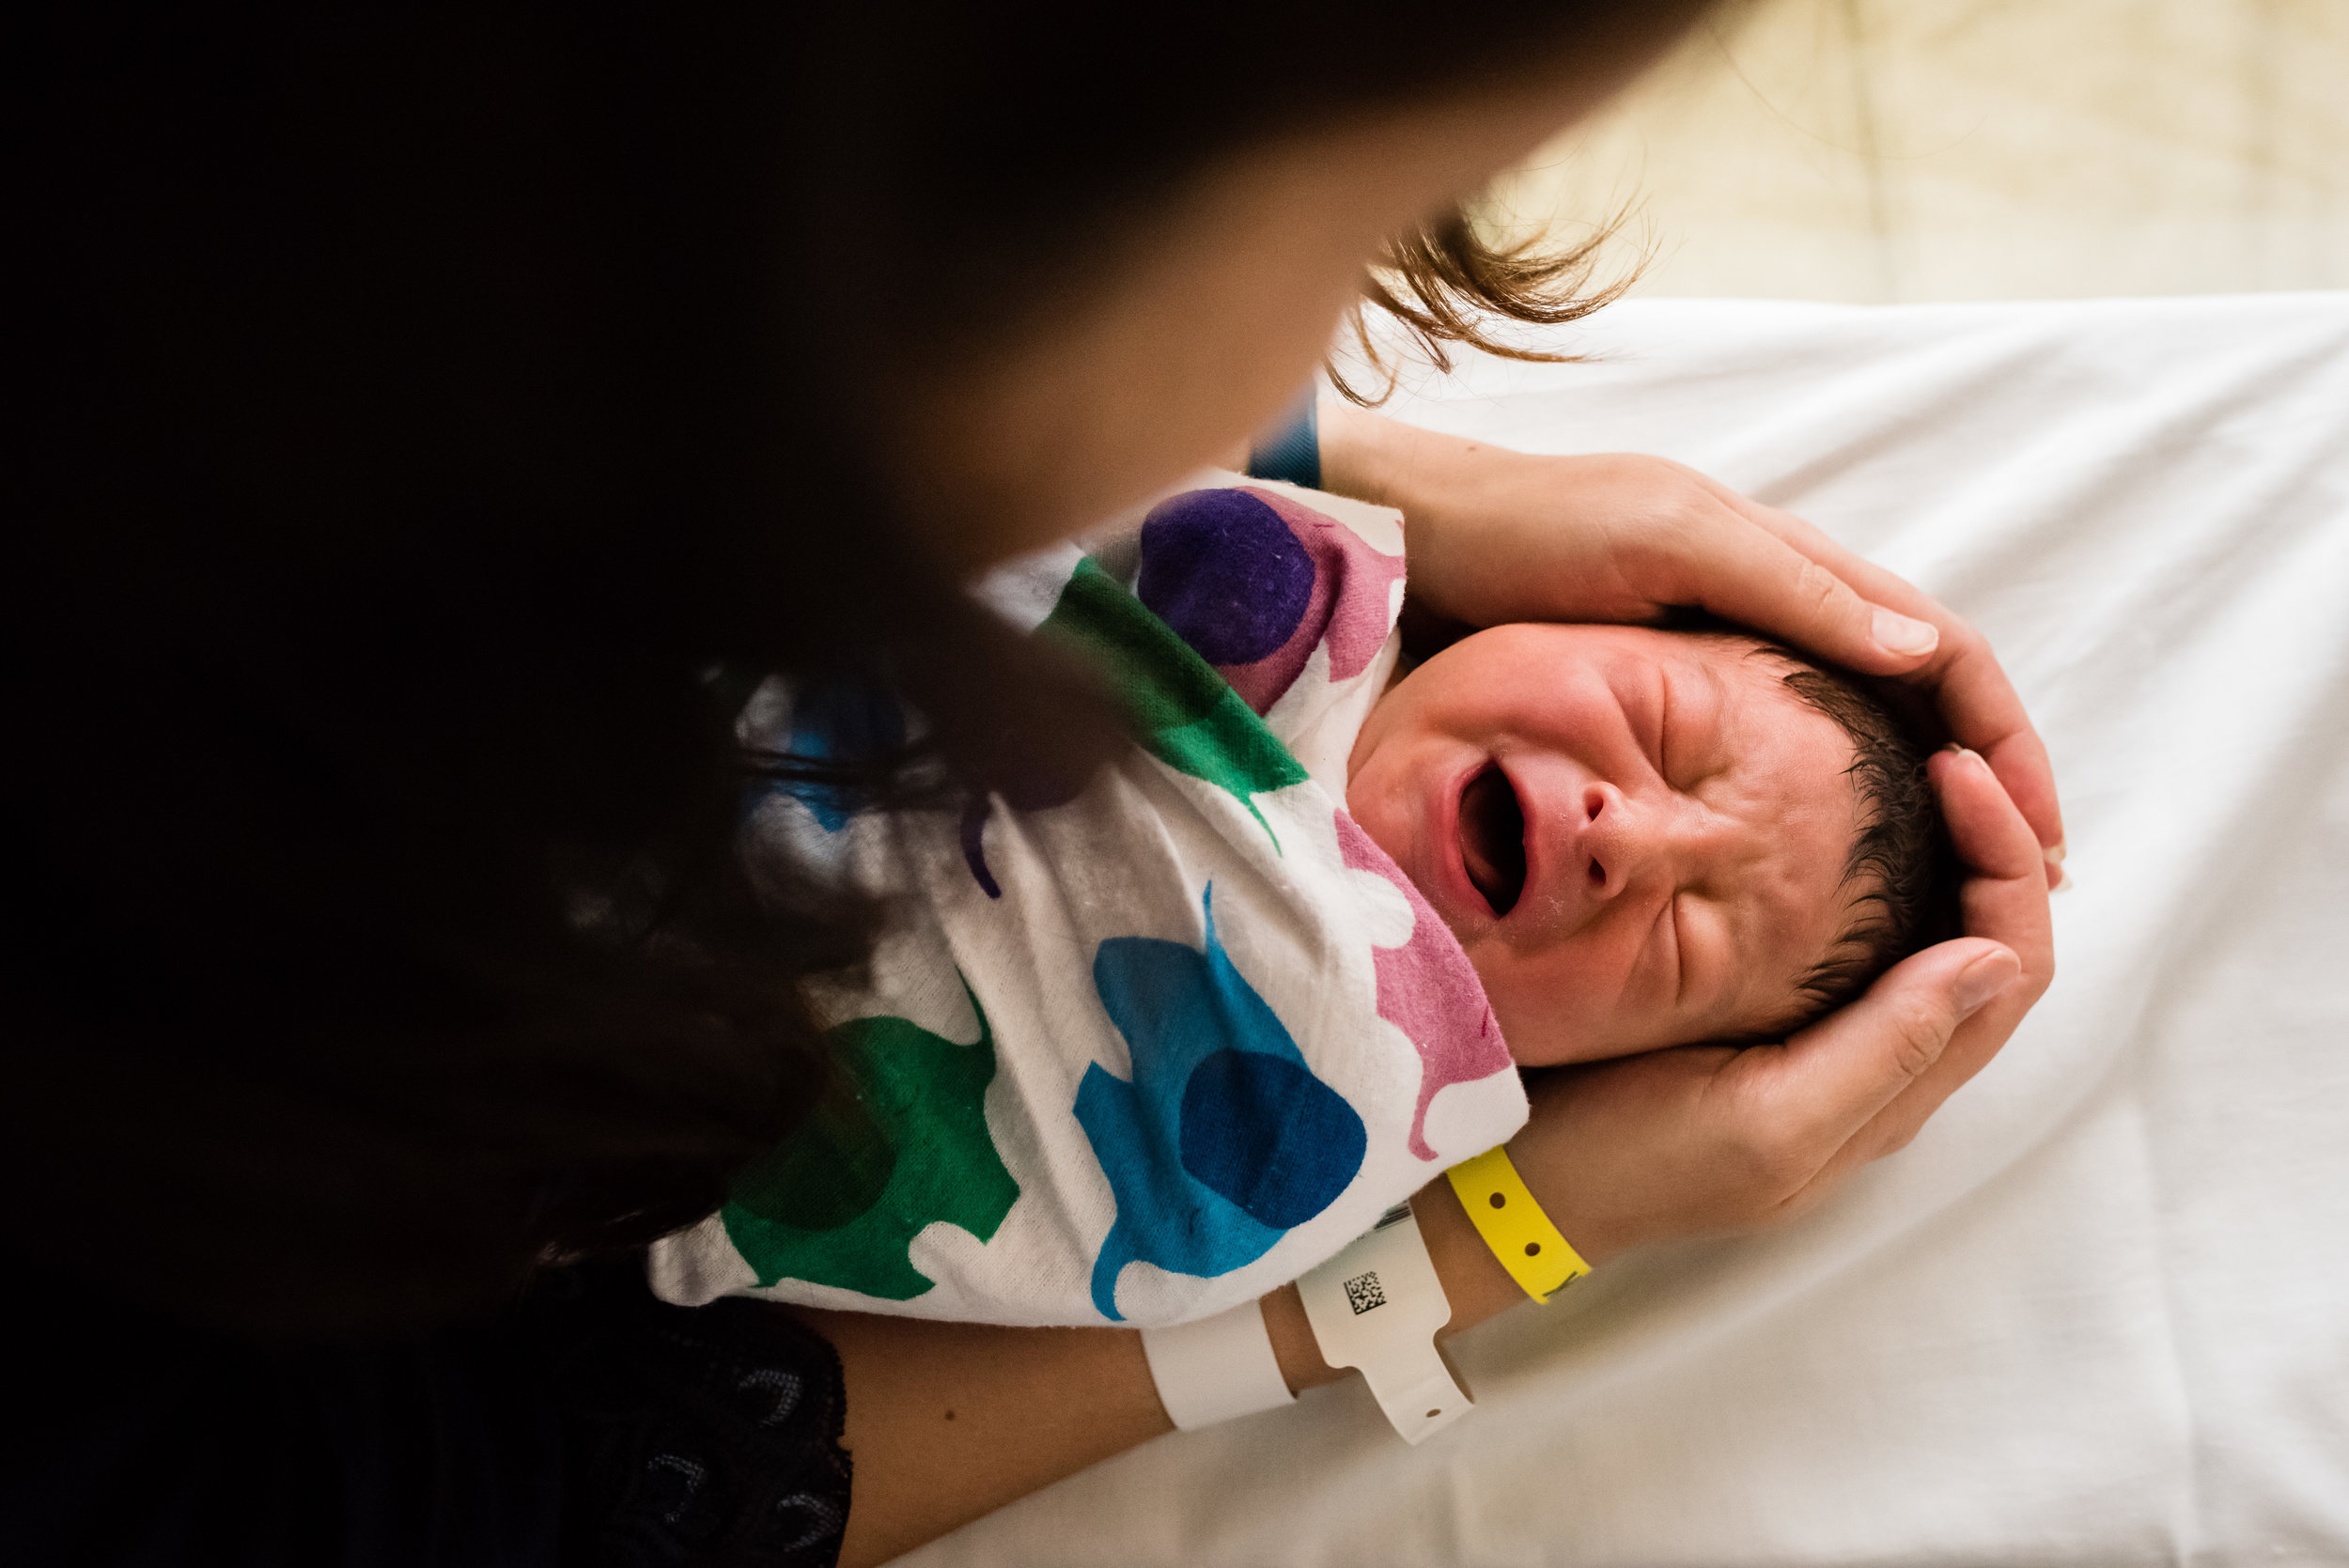 Mom comforting newborn baby in hospital crib by Northern Virginia Family Photographer Nicole Sanchez